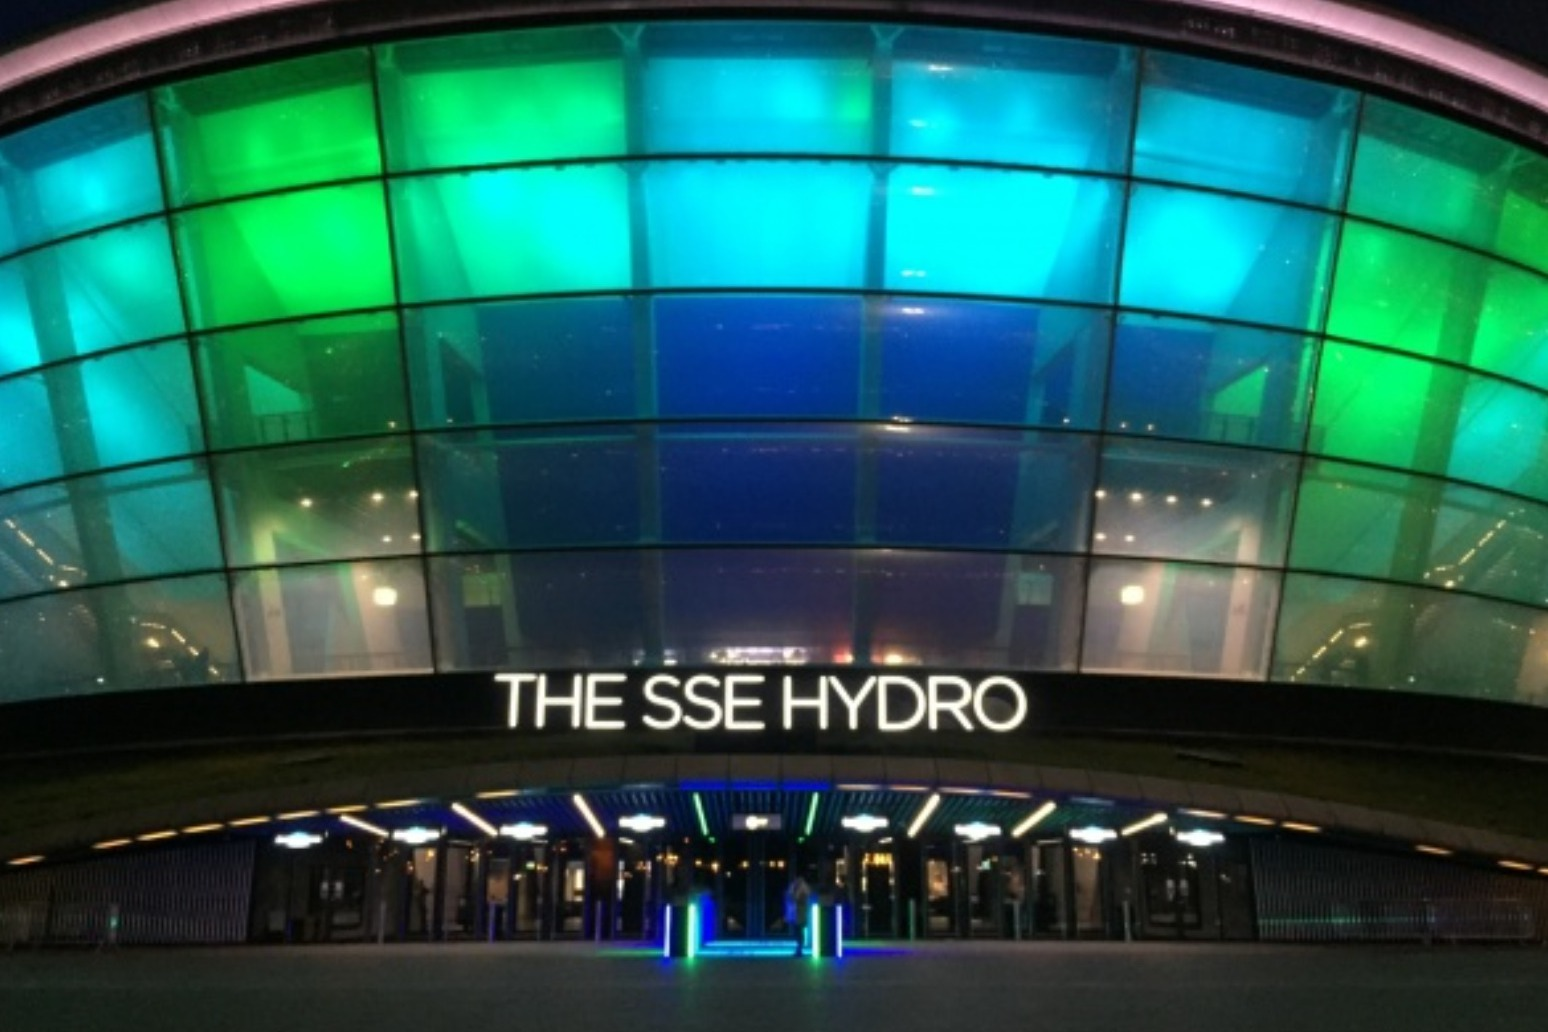 'Drastic' fall in vaccine appointment no-shows at Hydro arena in Scotland